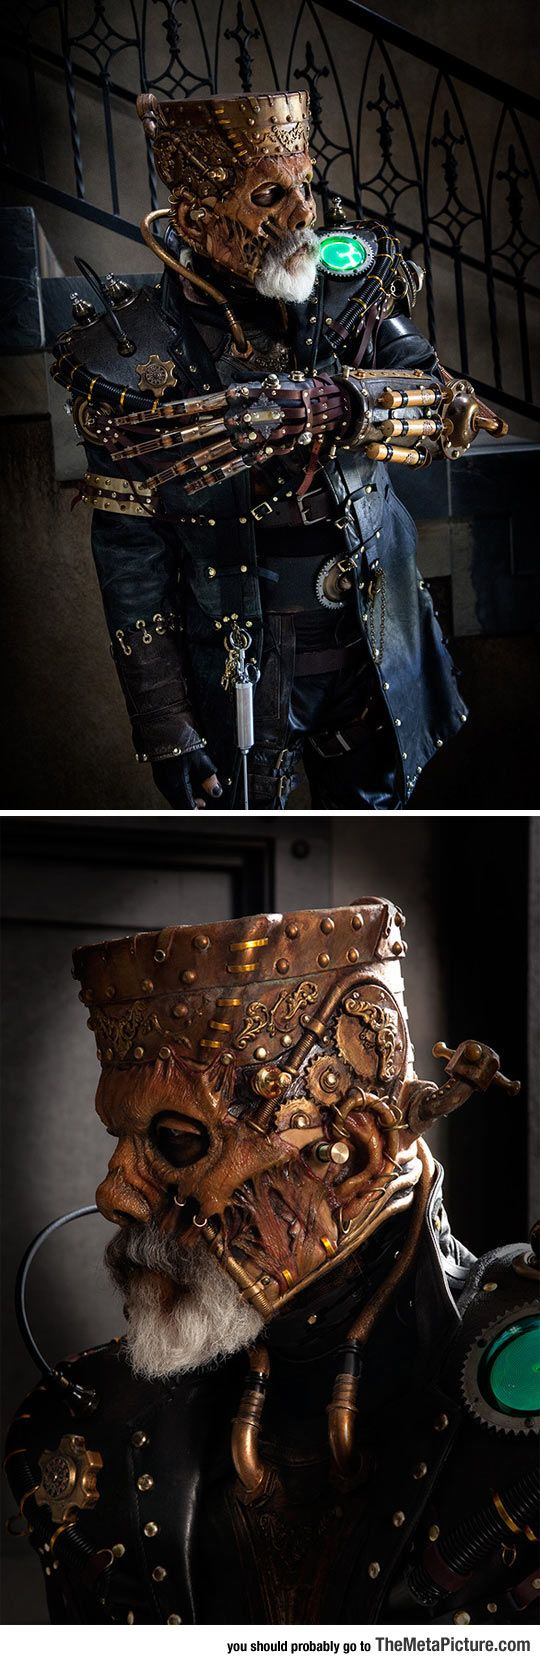 Steampunk Frankenstein Is Awesomely Terrifying